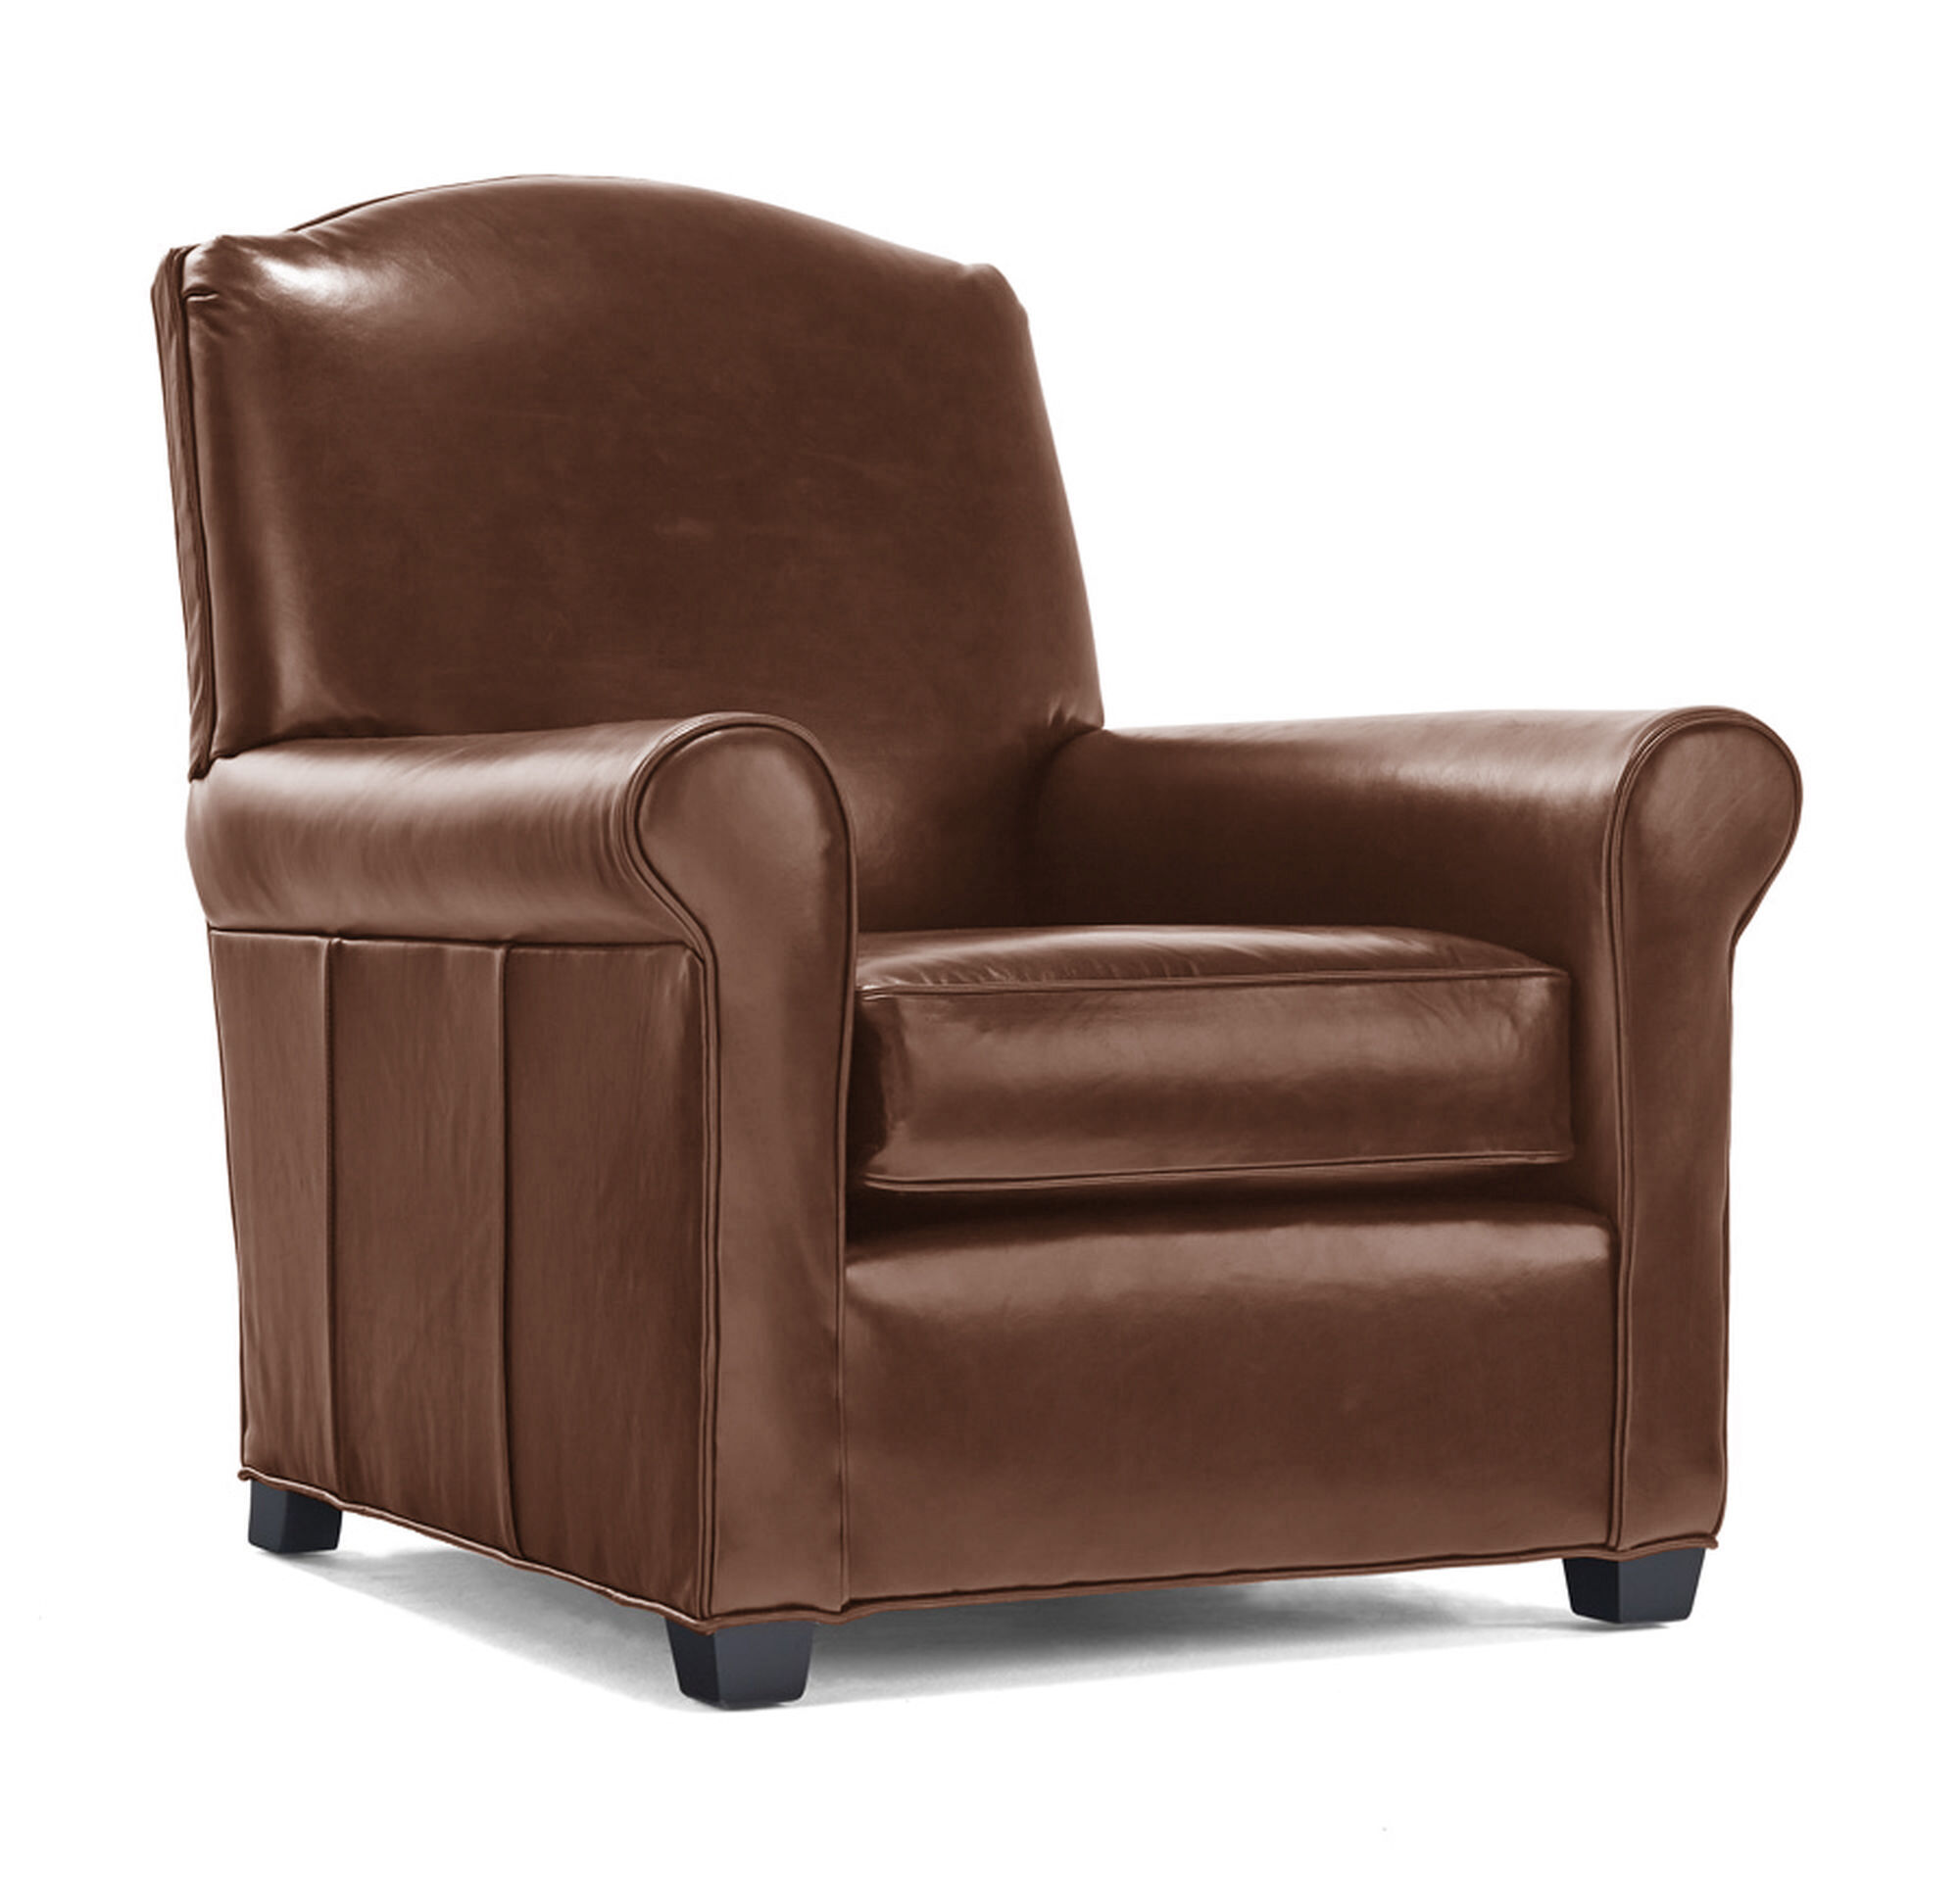 CHANDLER LEATHER CHAIR, PENLAND   TOBACCO, Hi Res